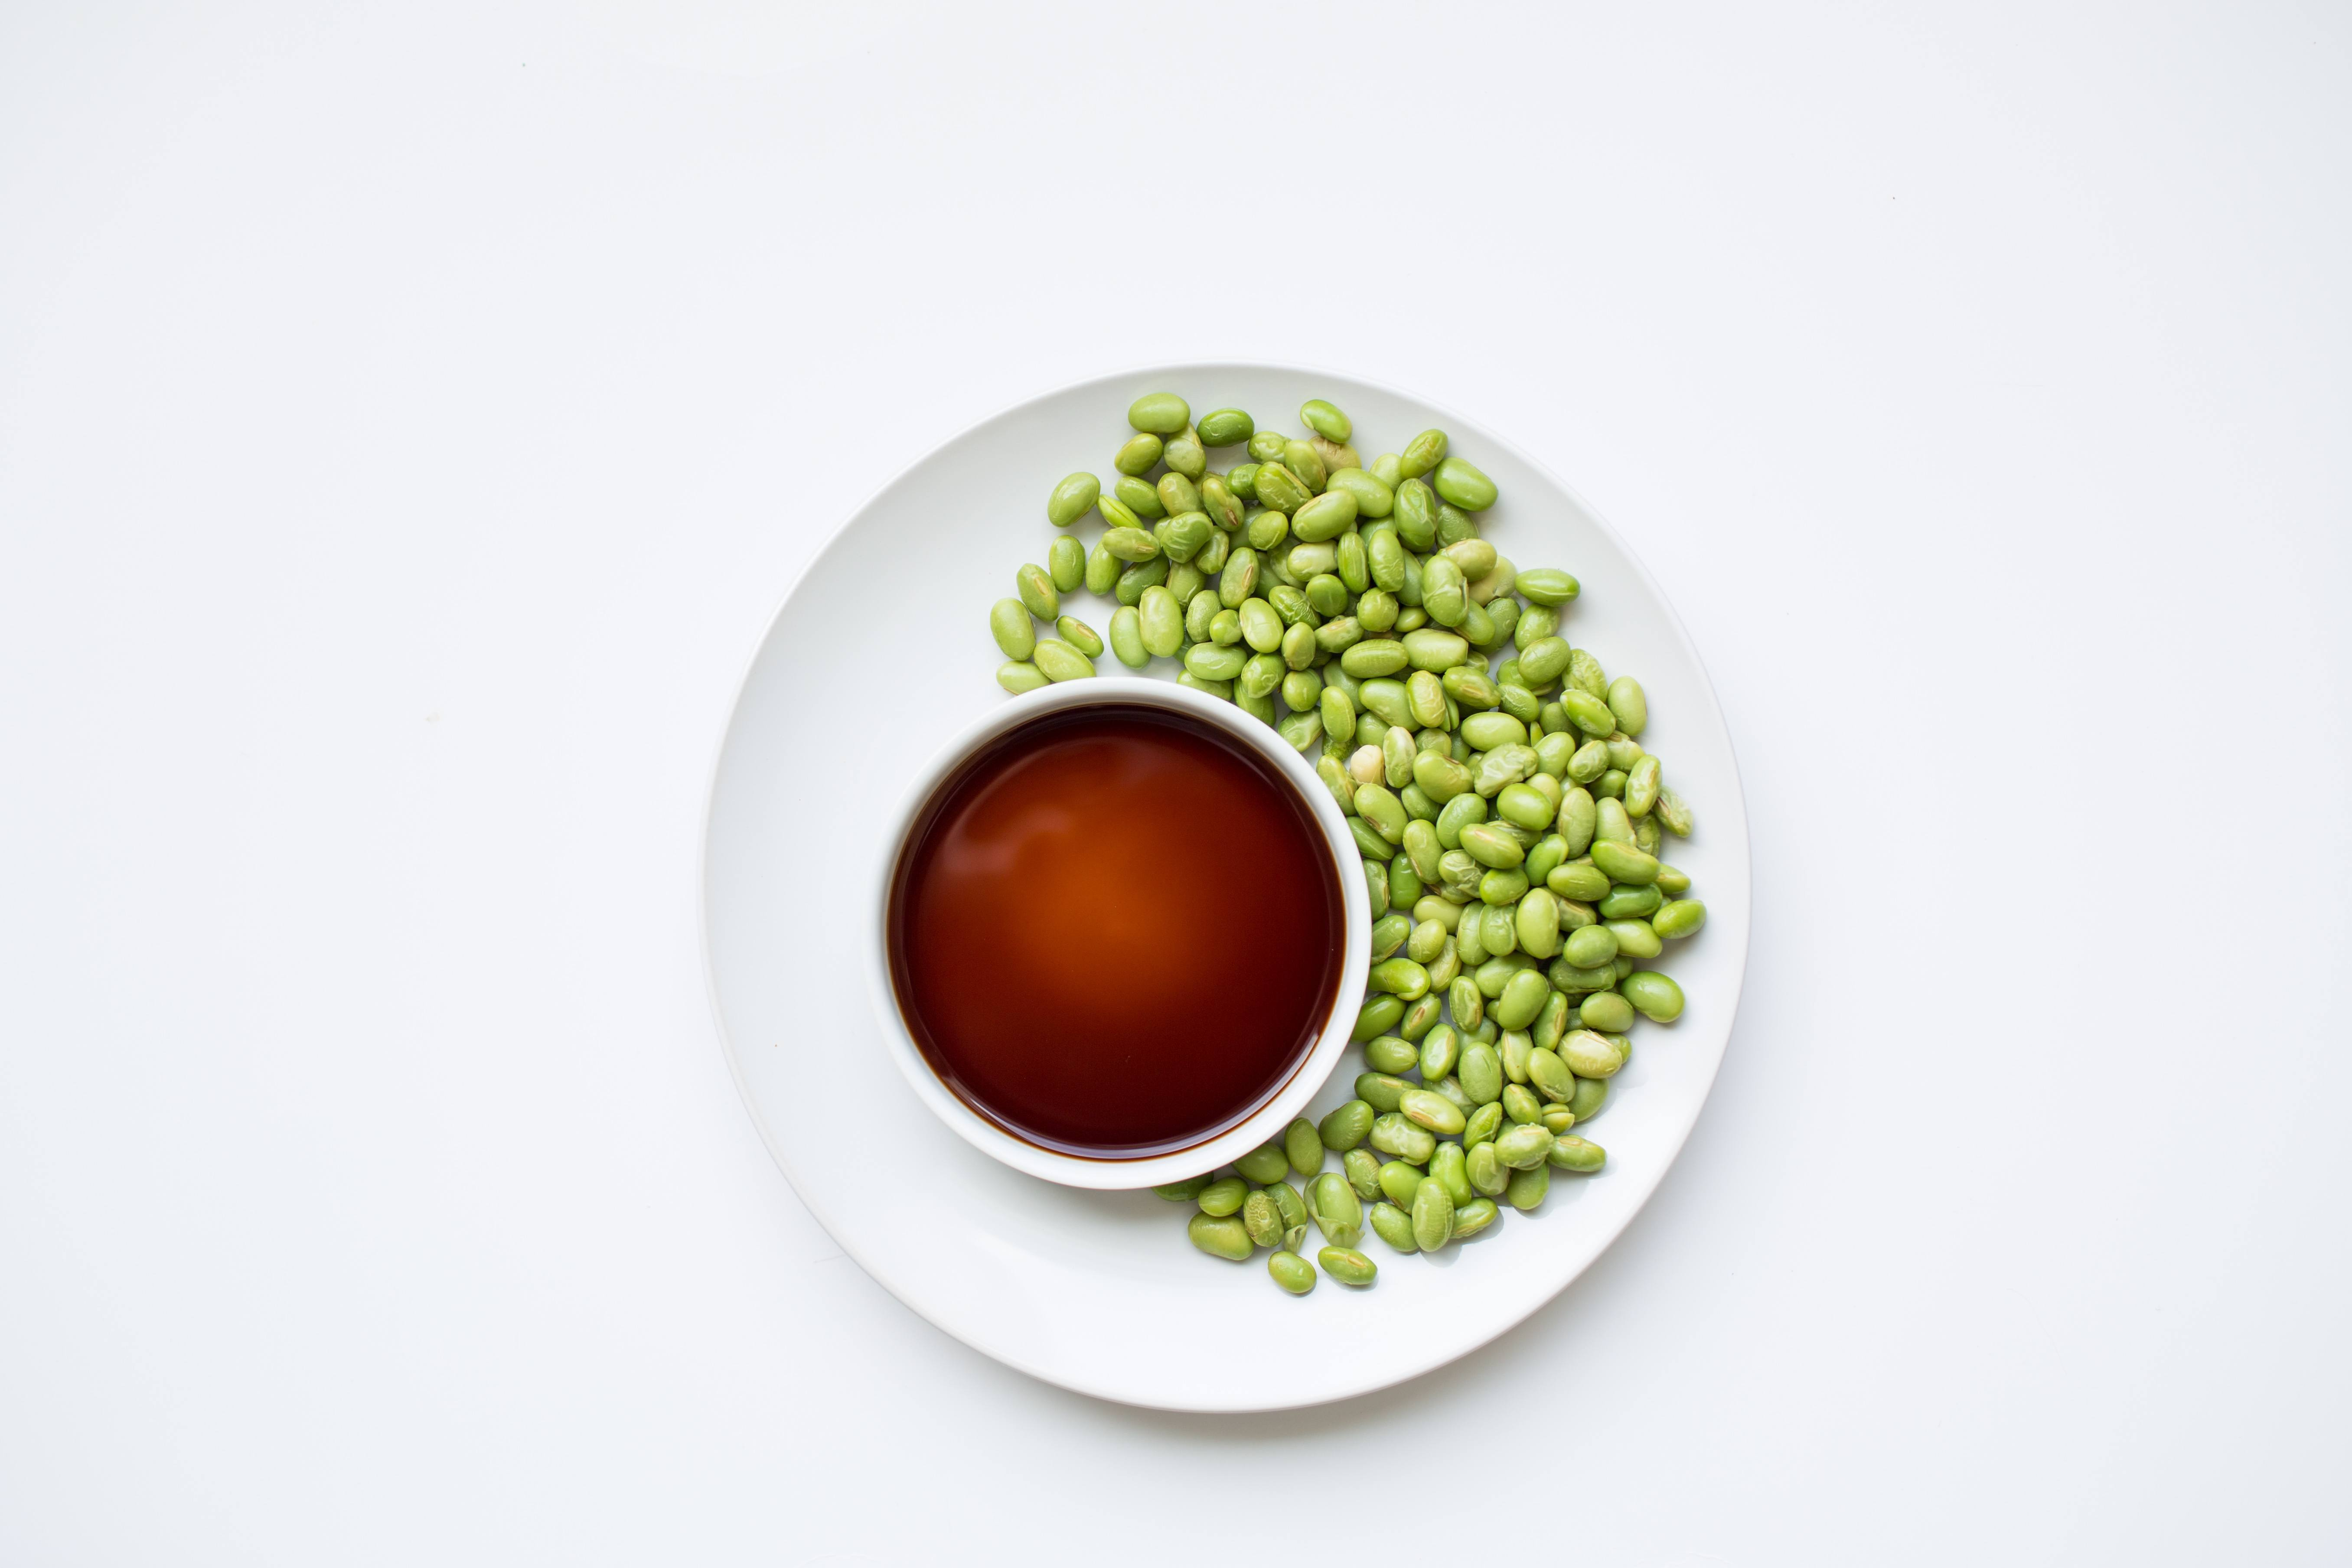 100 calorie snack edamame and soy sauce